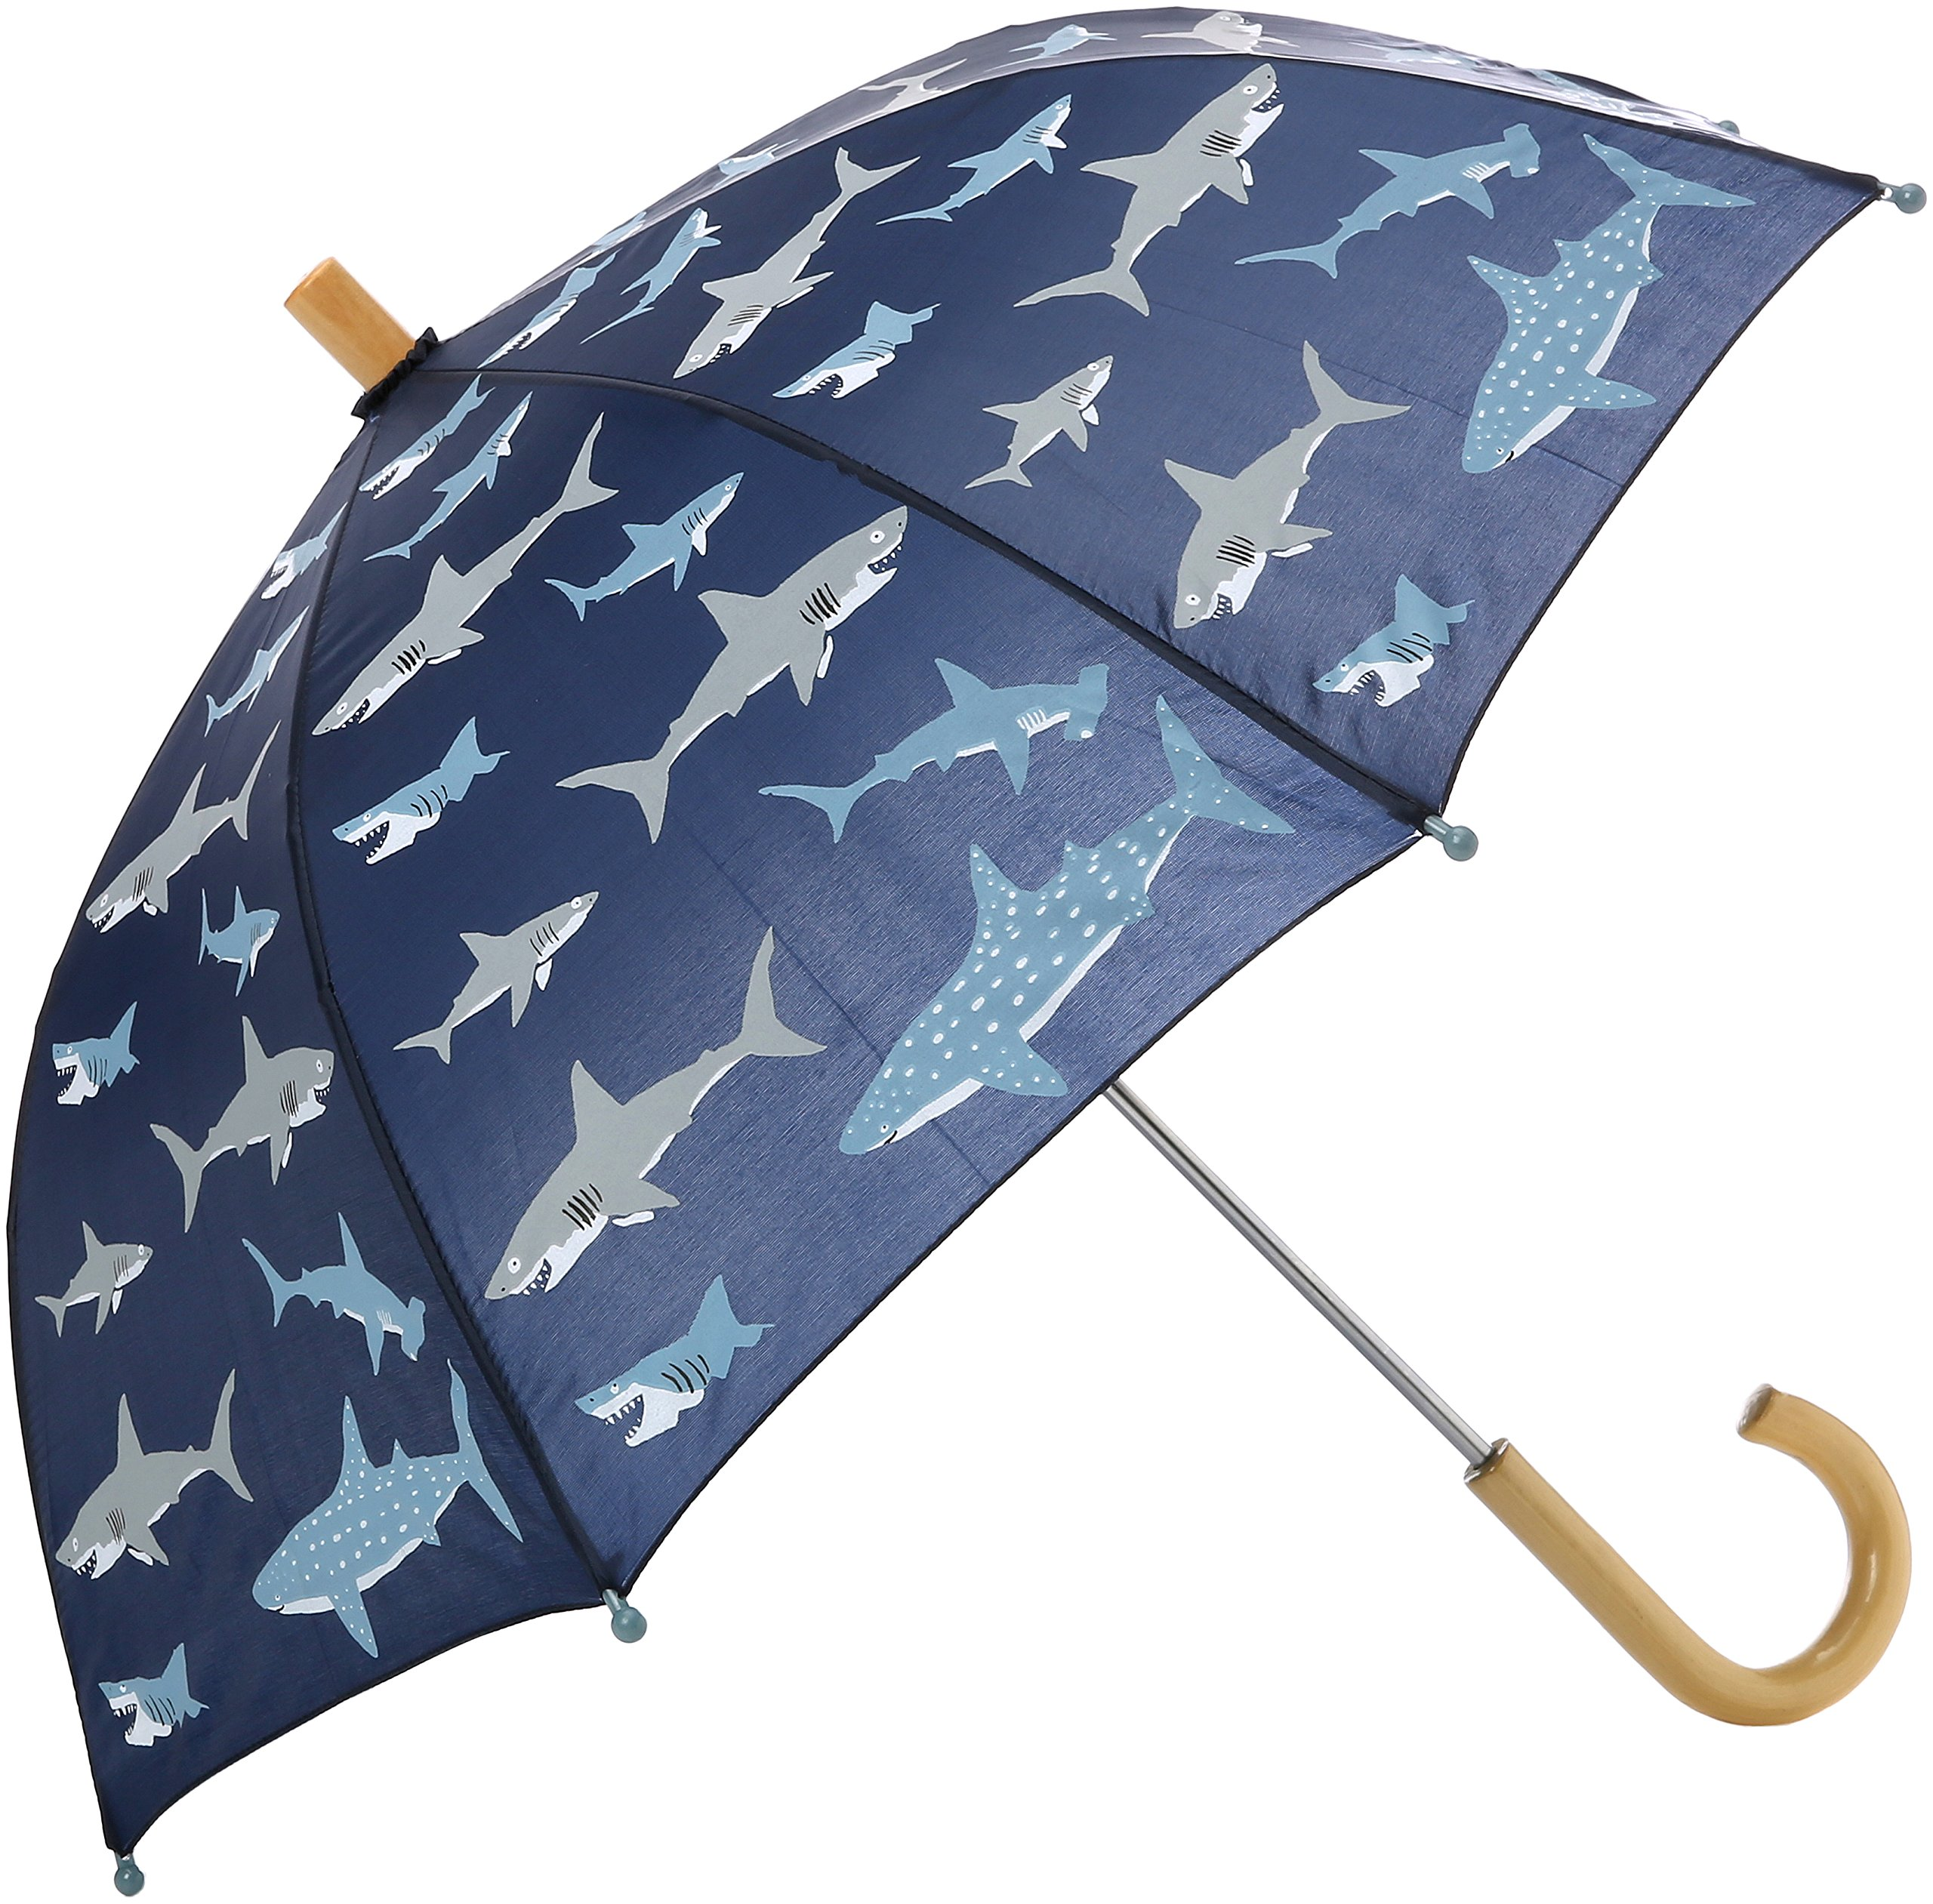 Hatley Little Boys' Printed Umbrellas, Shark Frenzy, One Size